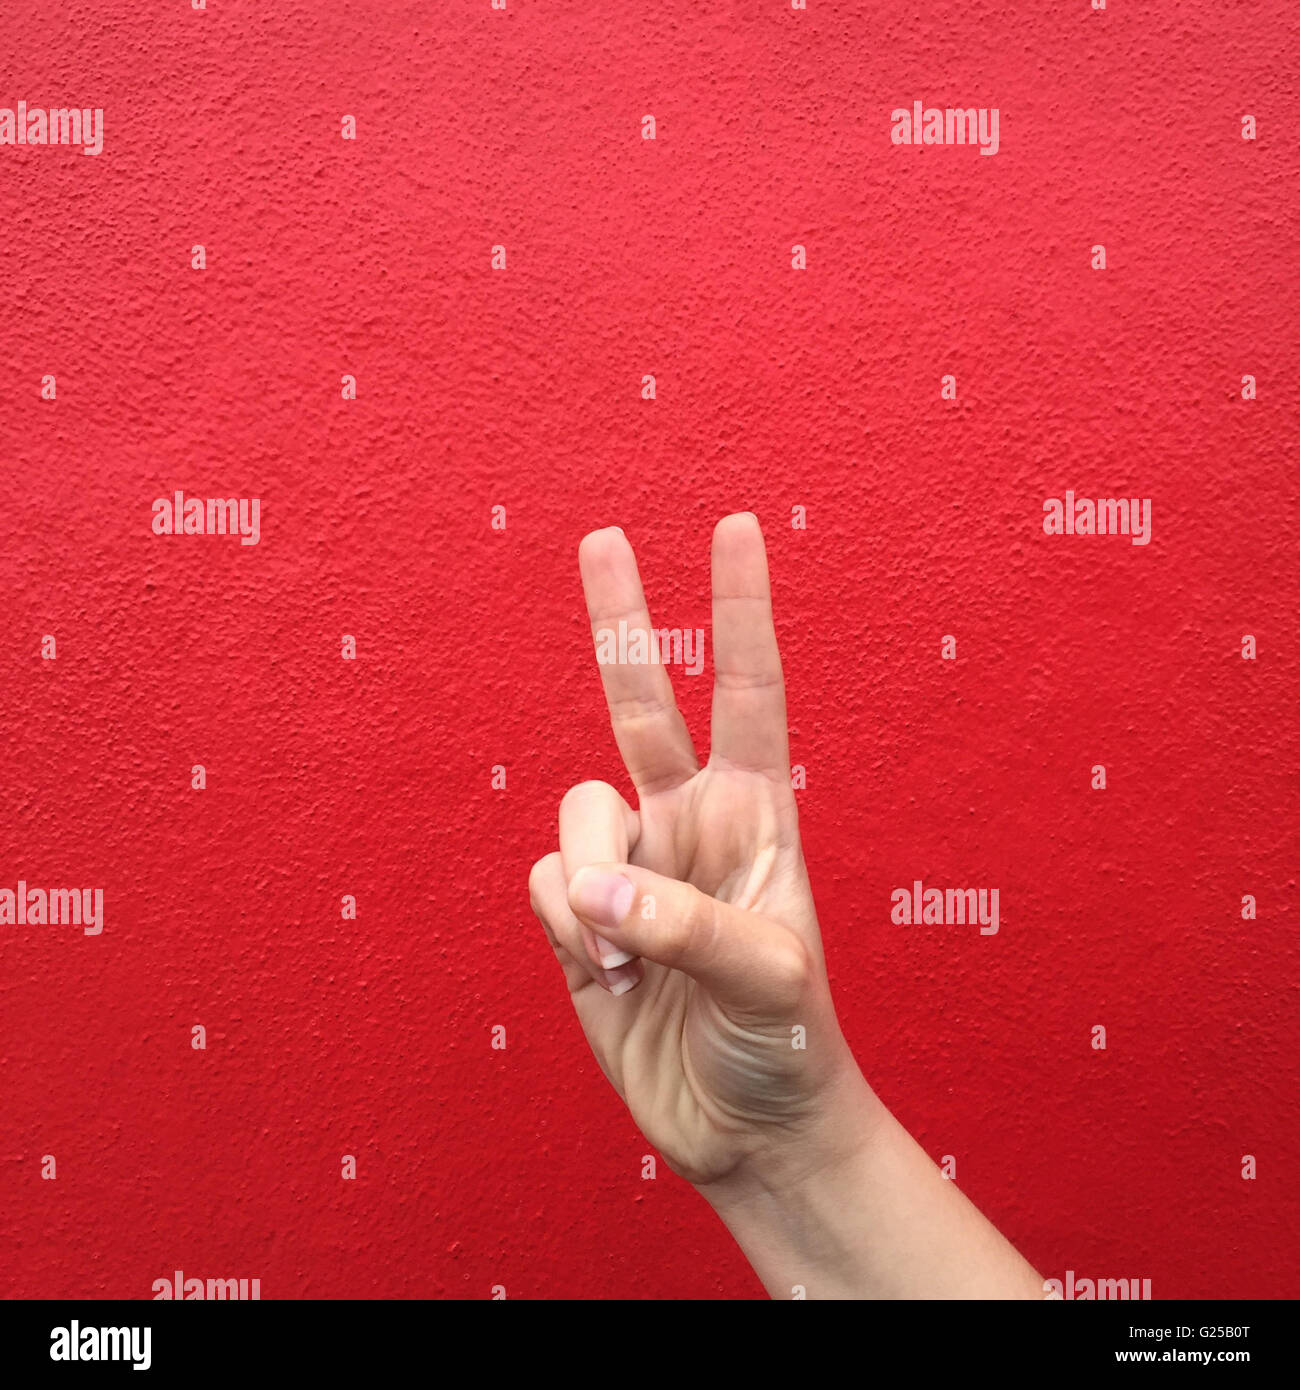 Woman's Hand making victory sign against red wall - Stock Image